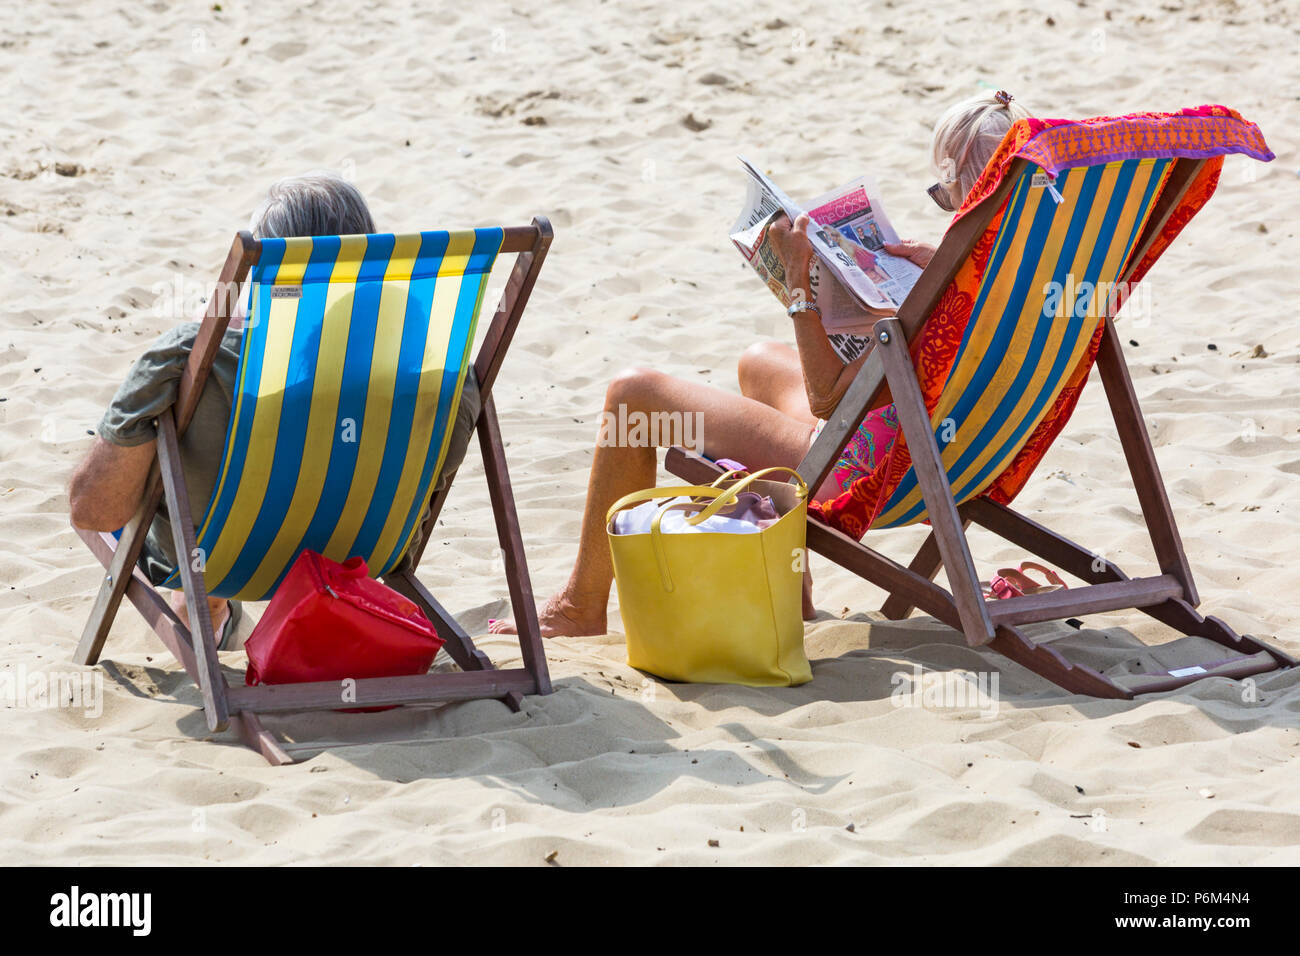 Bournemouth, Dorset, UK. 1st July 2018. UK weather: hazy sunshine, but still warm as thousands of sunseekers head to the beaches at Bournemouth to enjoy a day at the seaside. Couple relaxing in deckchairs on beach, reading newspaper. Credit: Carolyn Jenkins/Alamy Live News - Stock Image